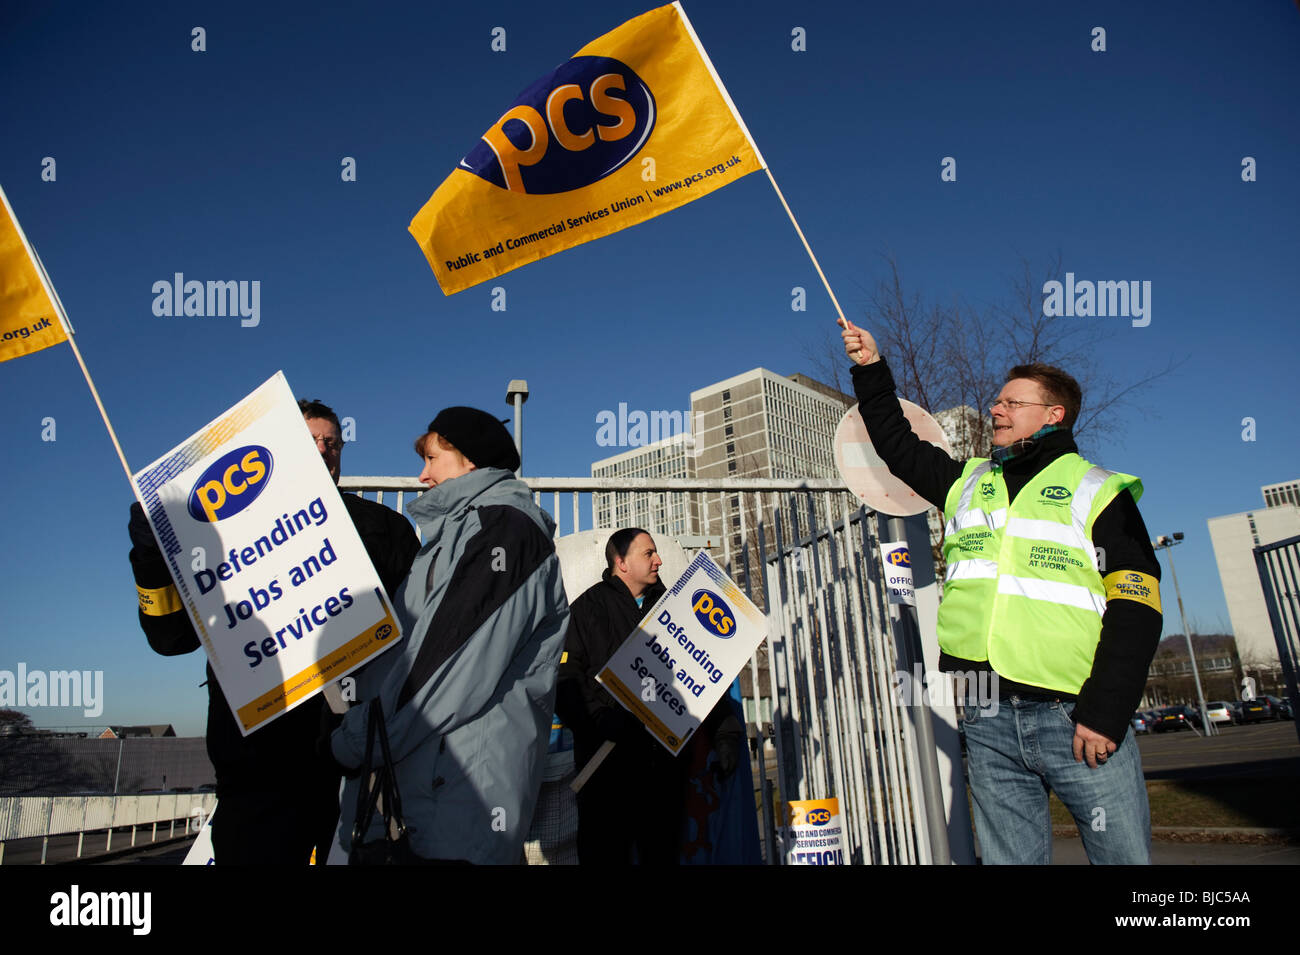 PCS [Public and Commercial Services] union members on strike, picketing welsh civil service offices, Cardiff, March - Stock Image